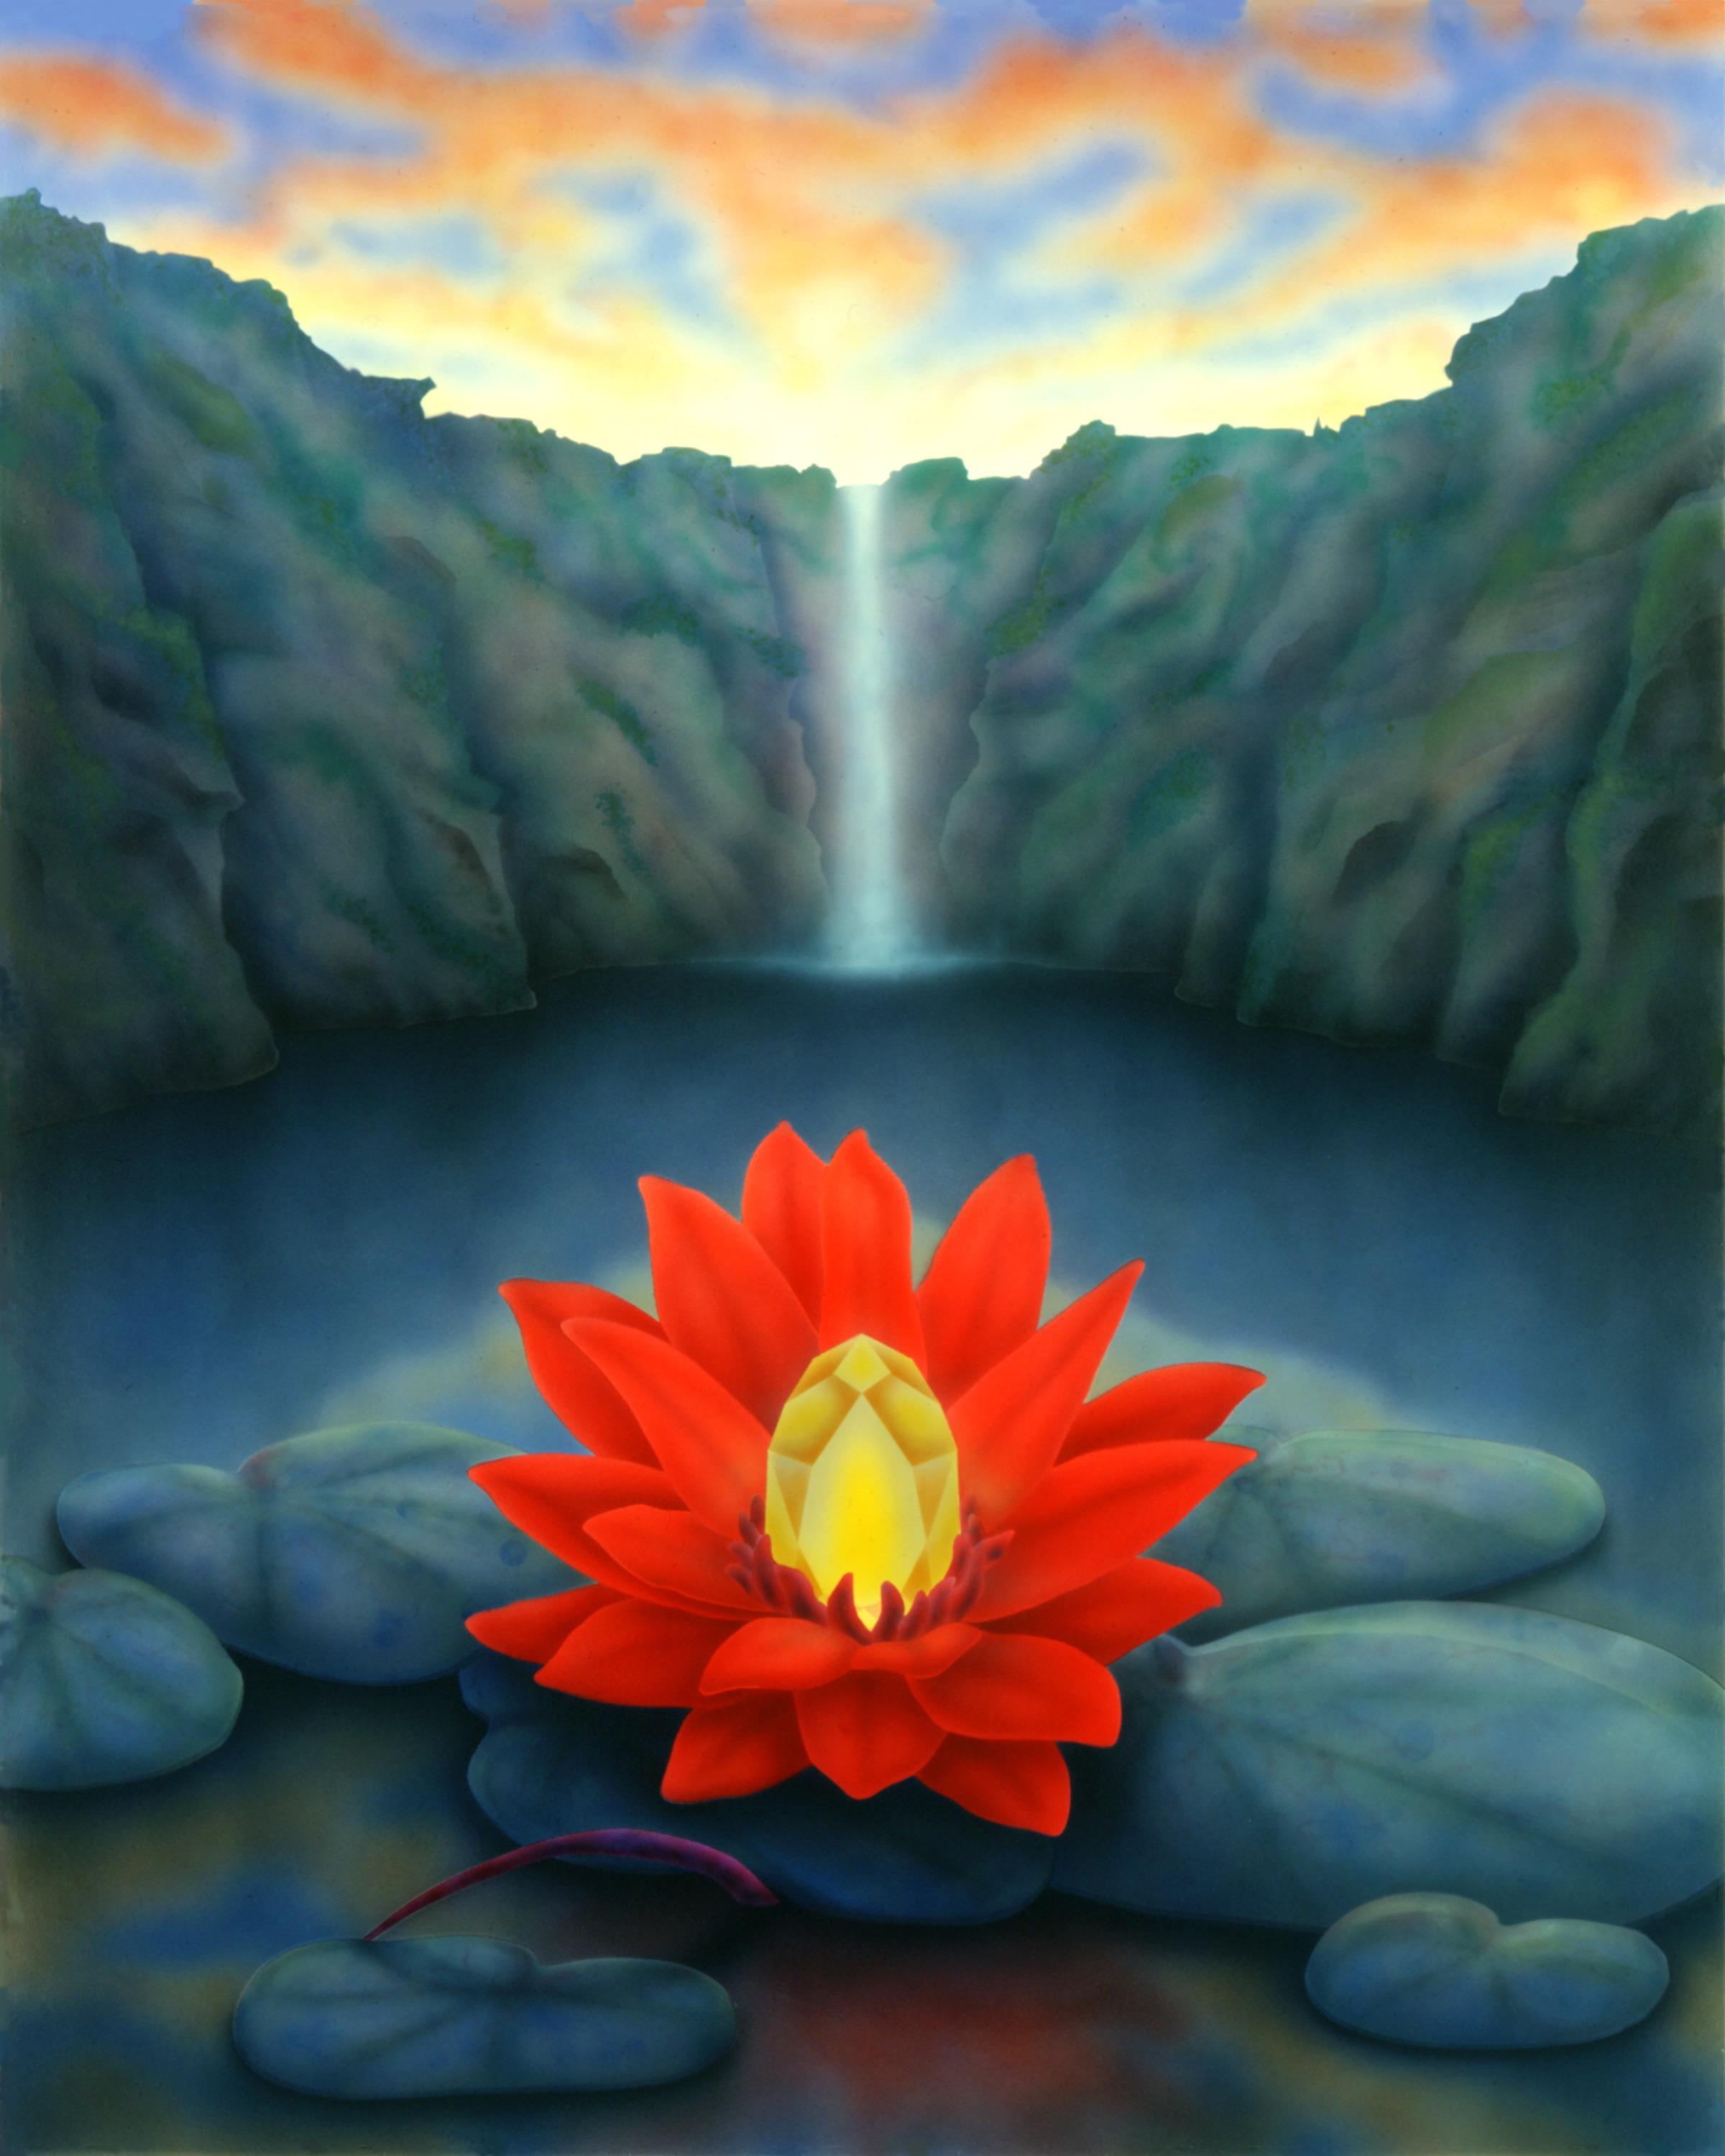 illustration of lotus blossom on rocks by mountain lake with waterfall at sunrise